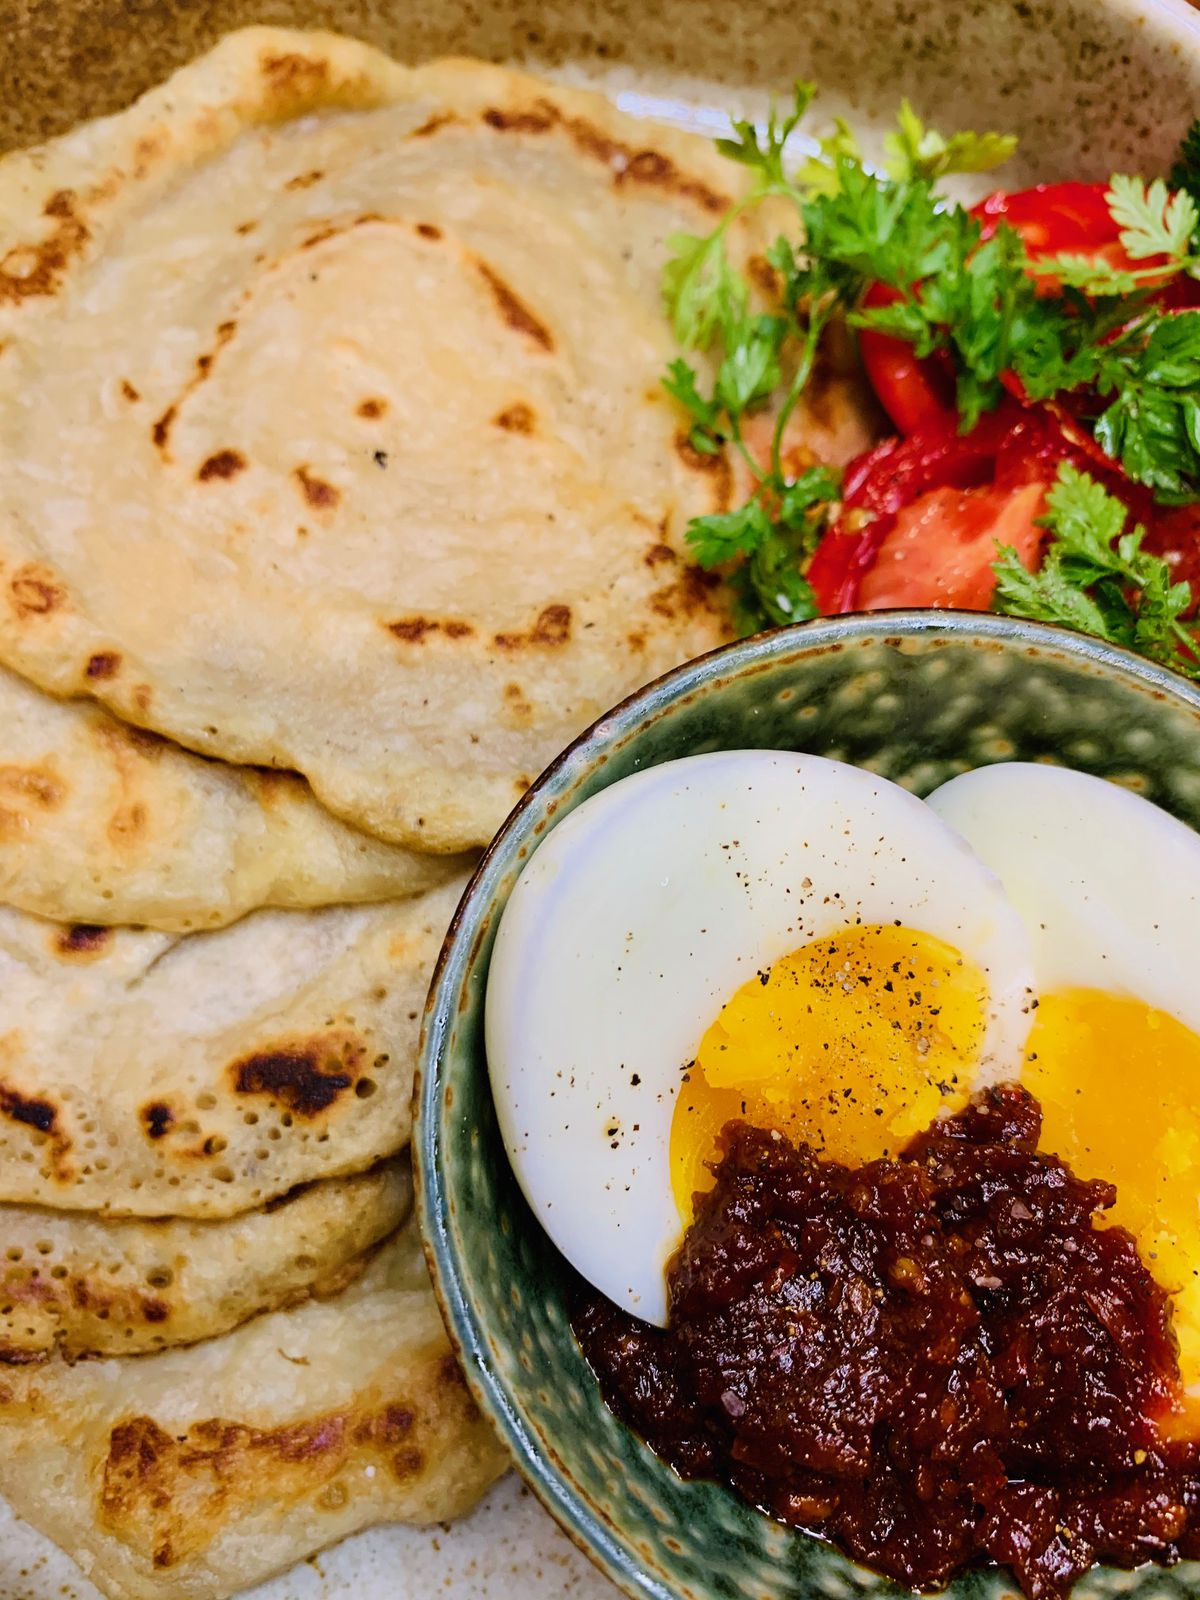 Lempeng kelapa (coconut pancakes) with eggs and Mexican-inspired sambal